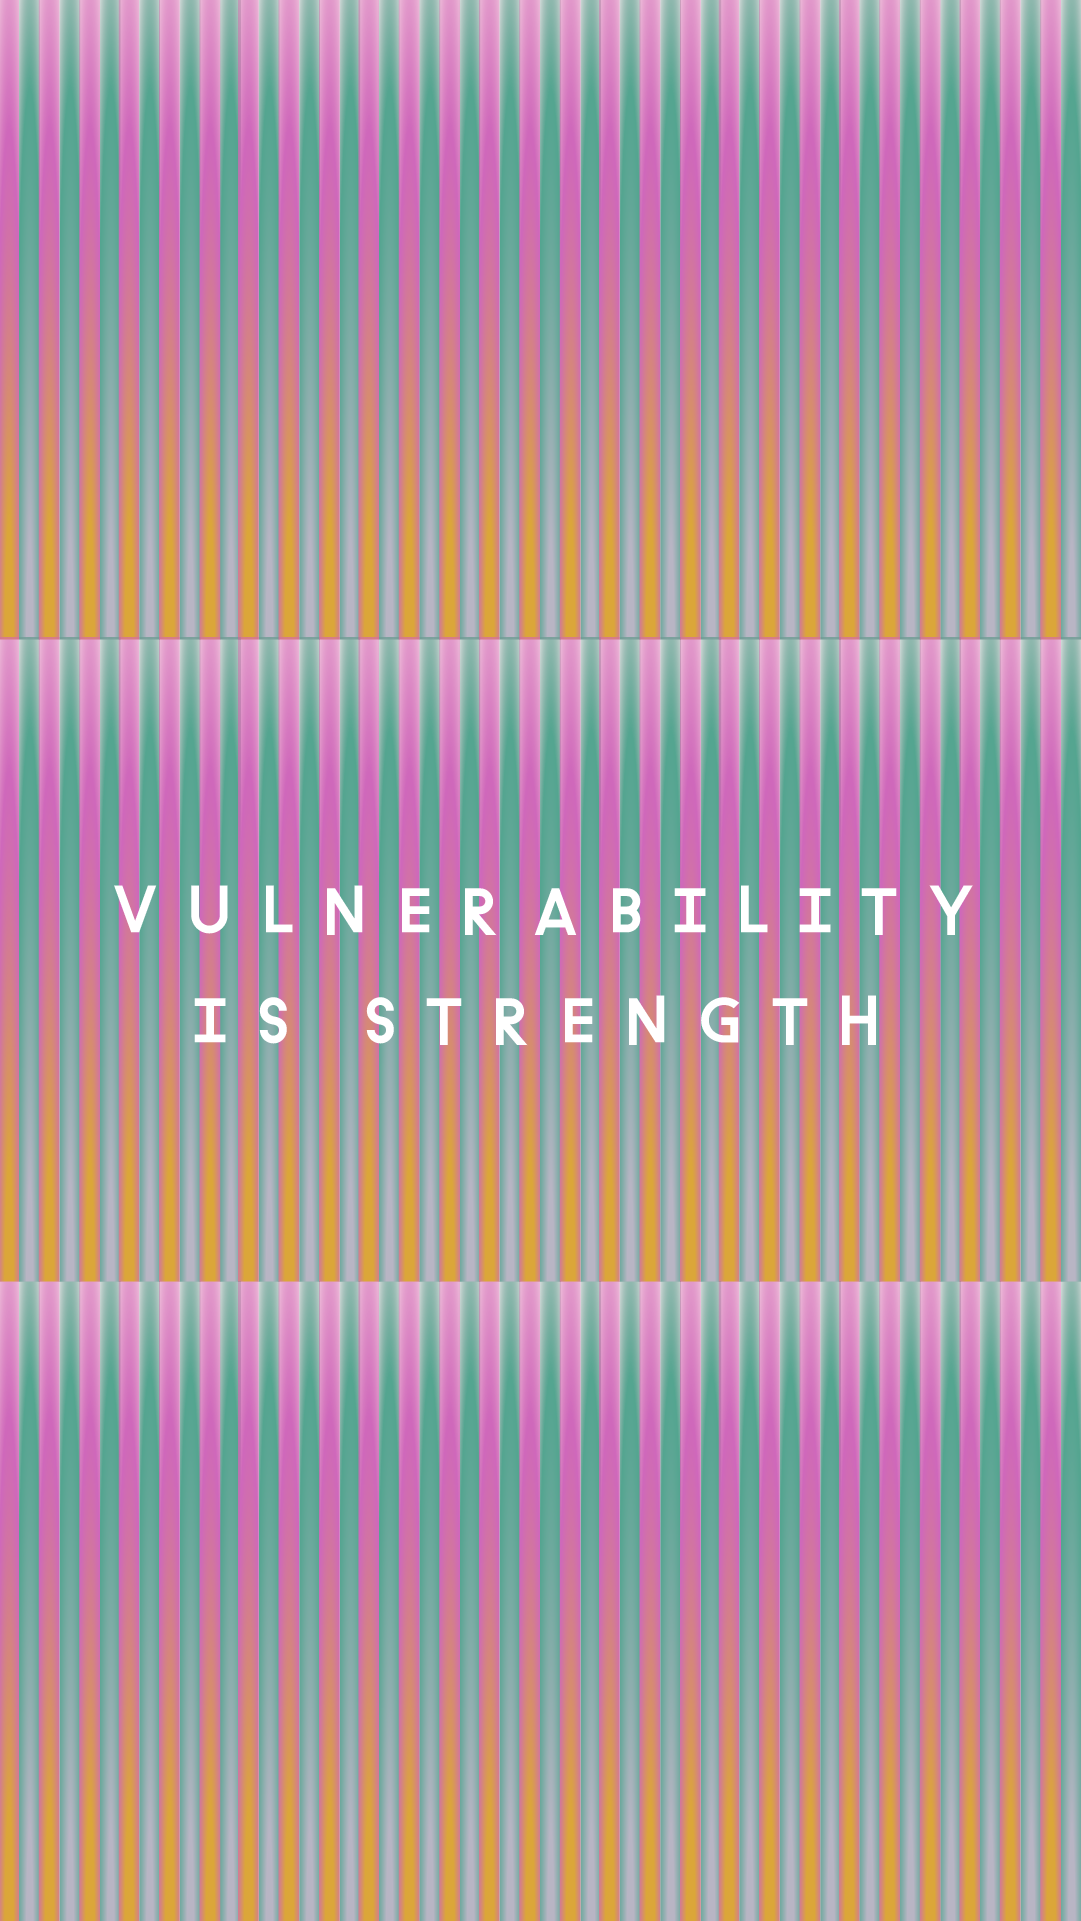 Vulnerability-front_VEDROS